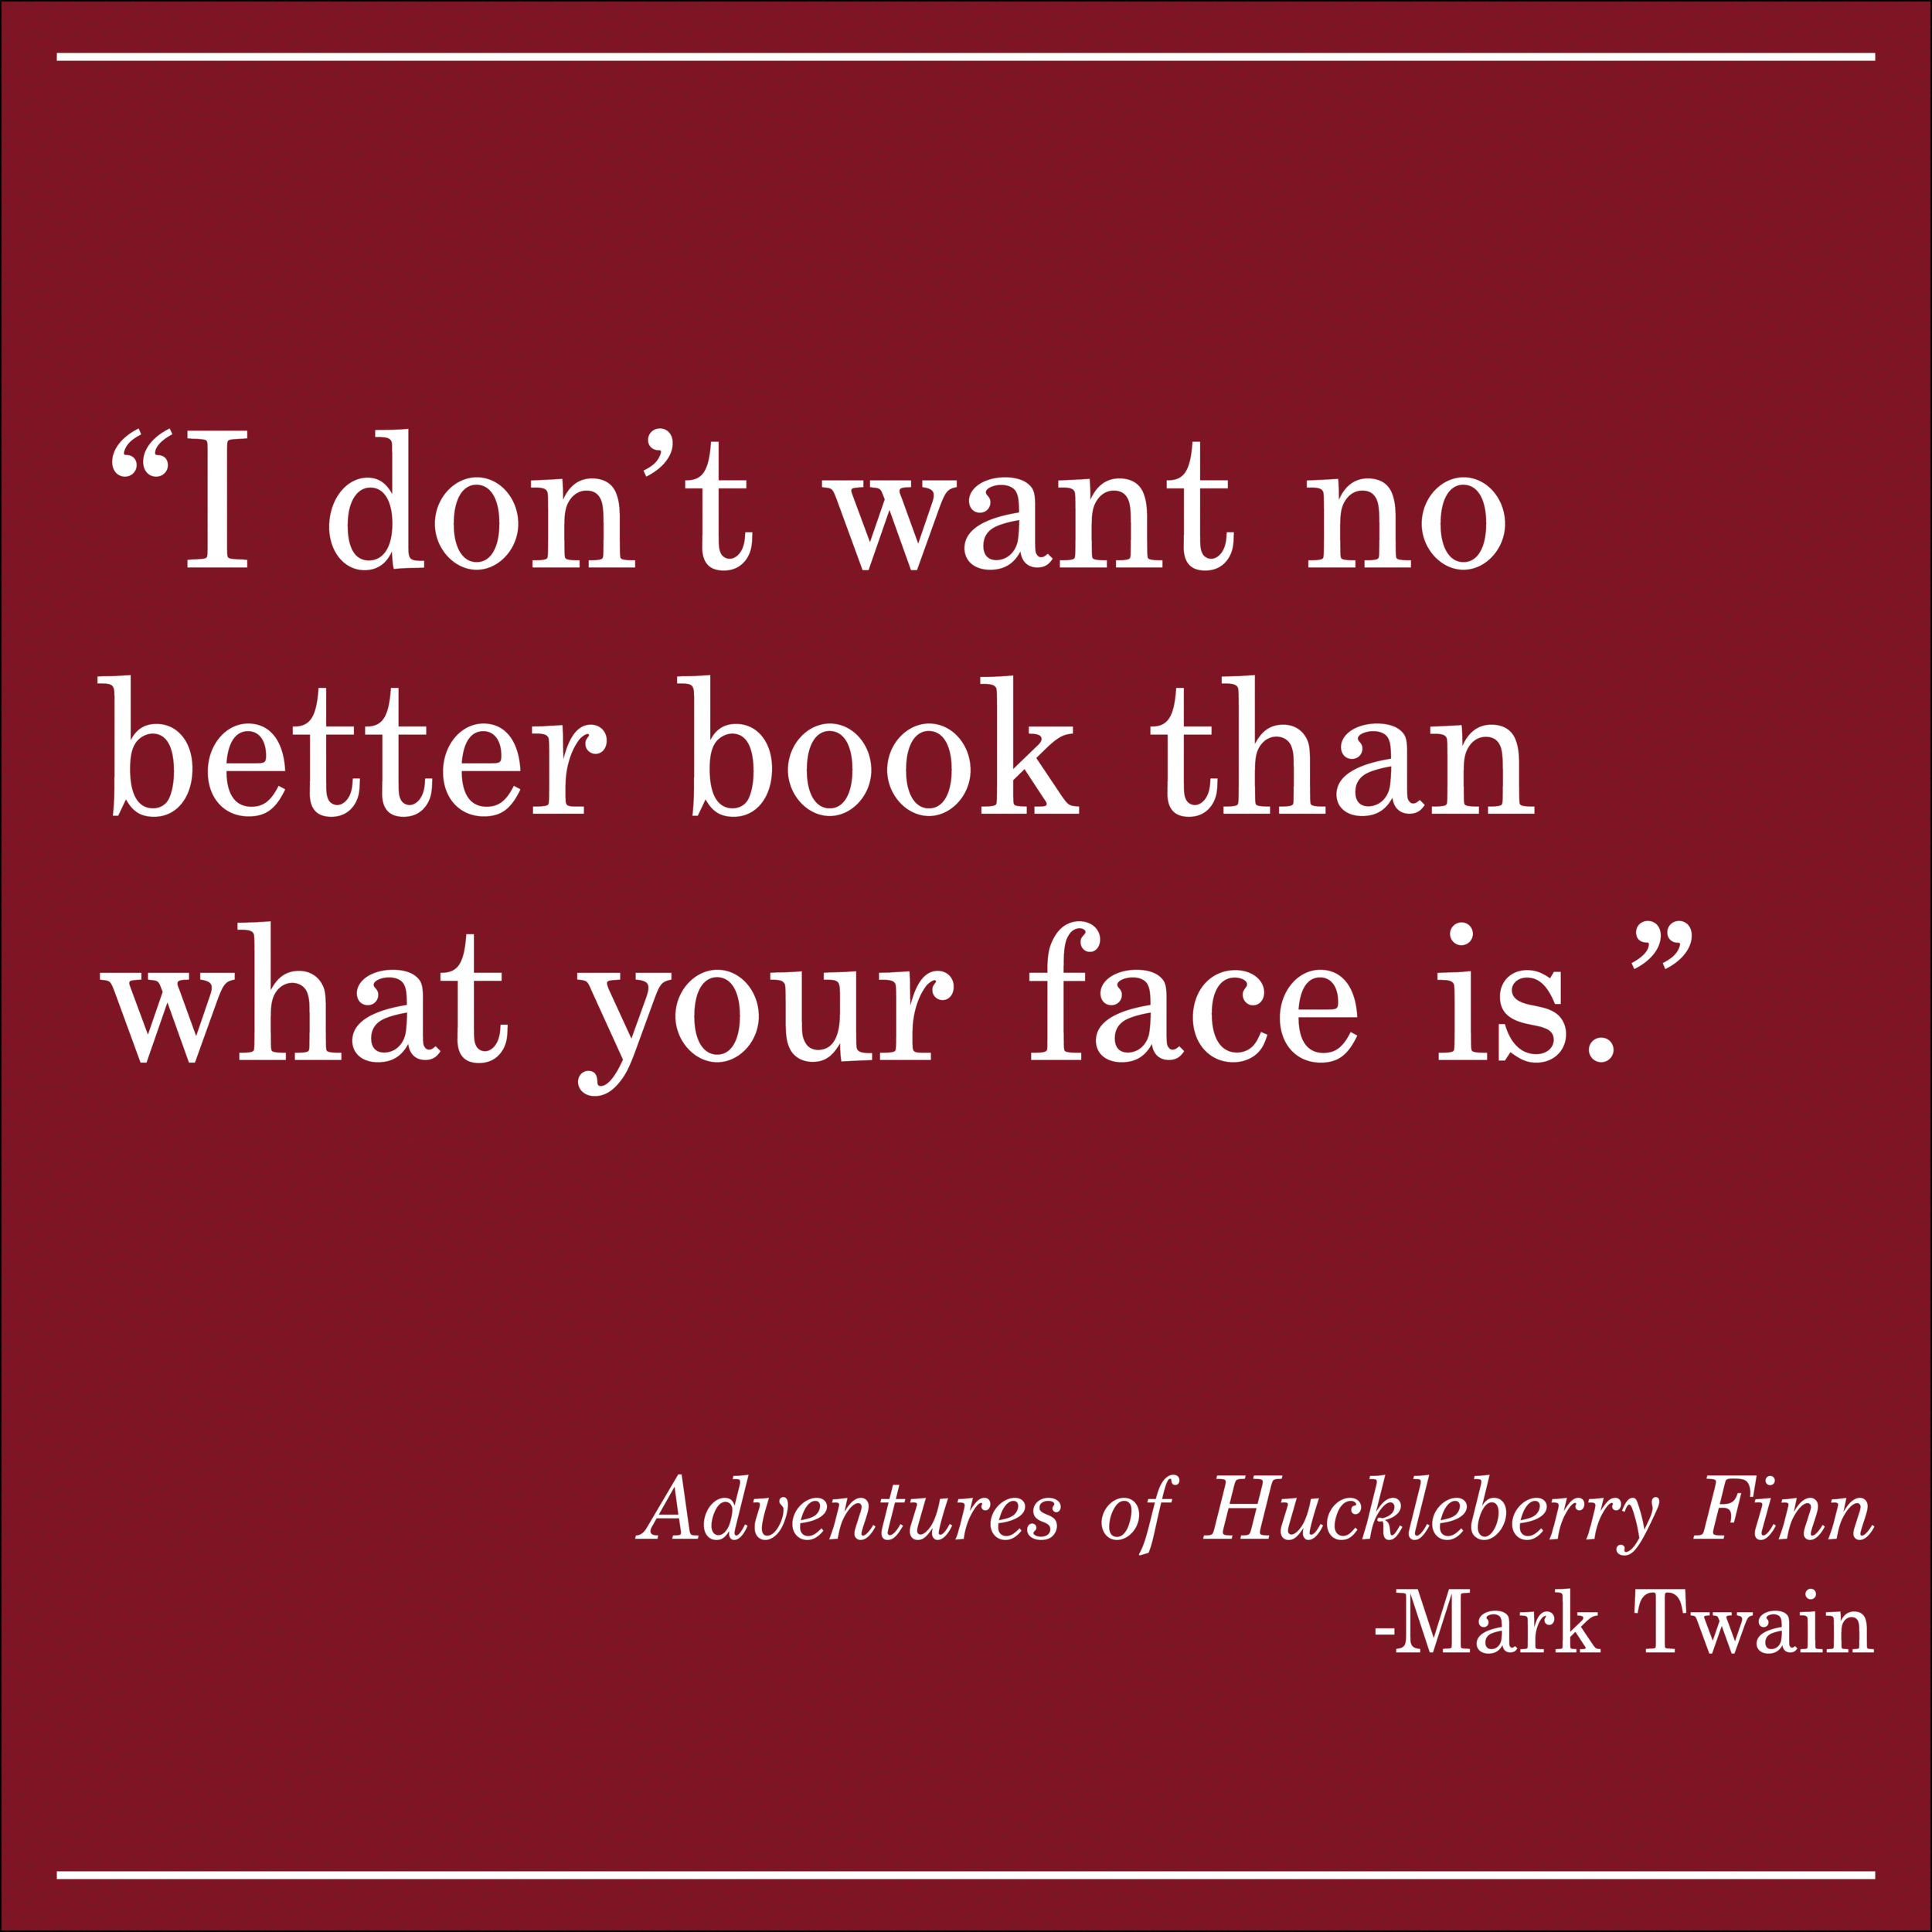 Daily Quote Mark Twain Huckleberry Finn